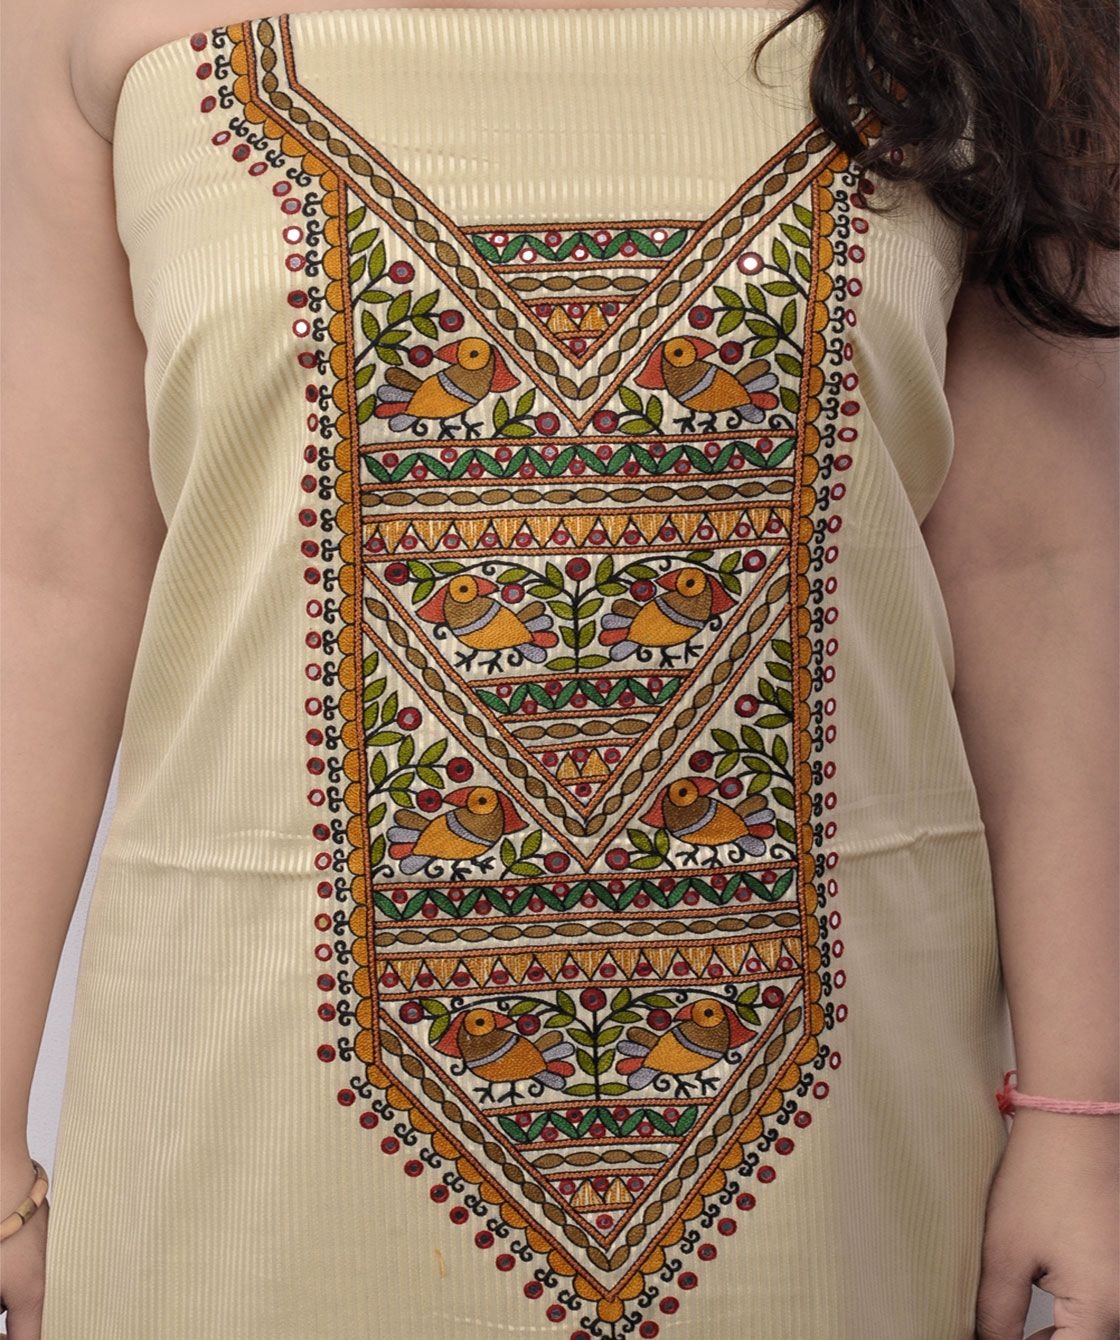 Pin By Smit On Emb-balochi | Pinterest | Hand Embroidery And Embroidery